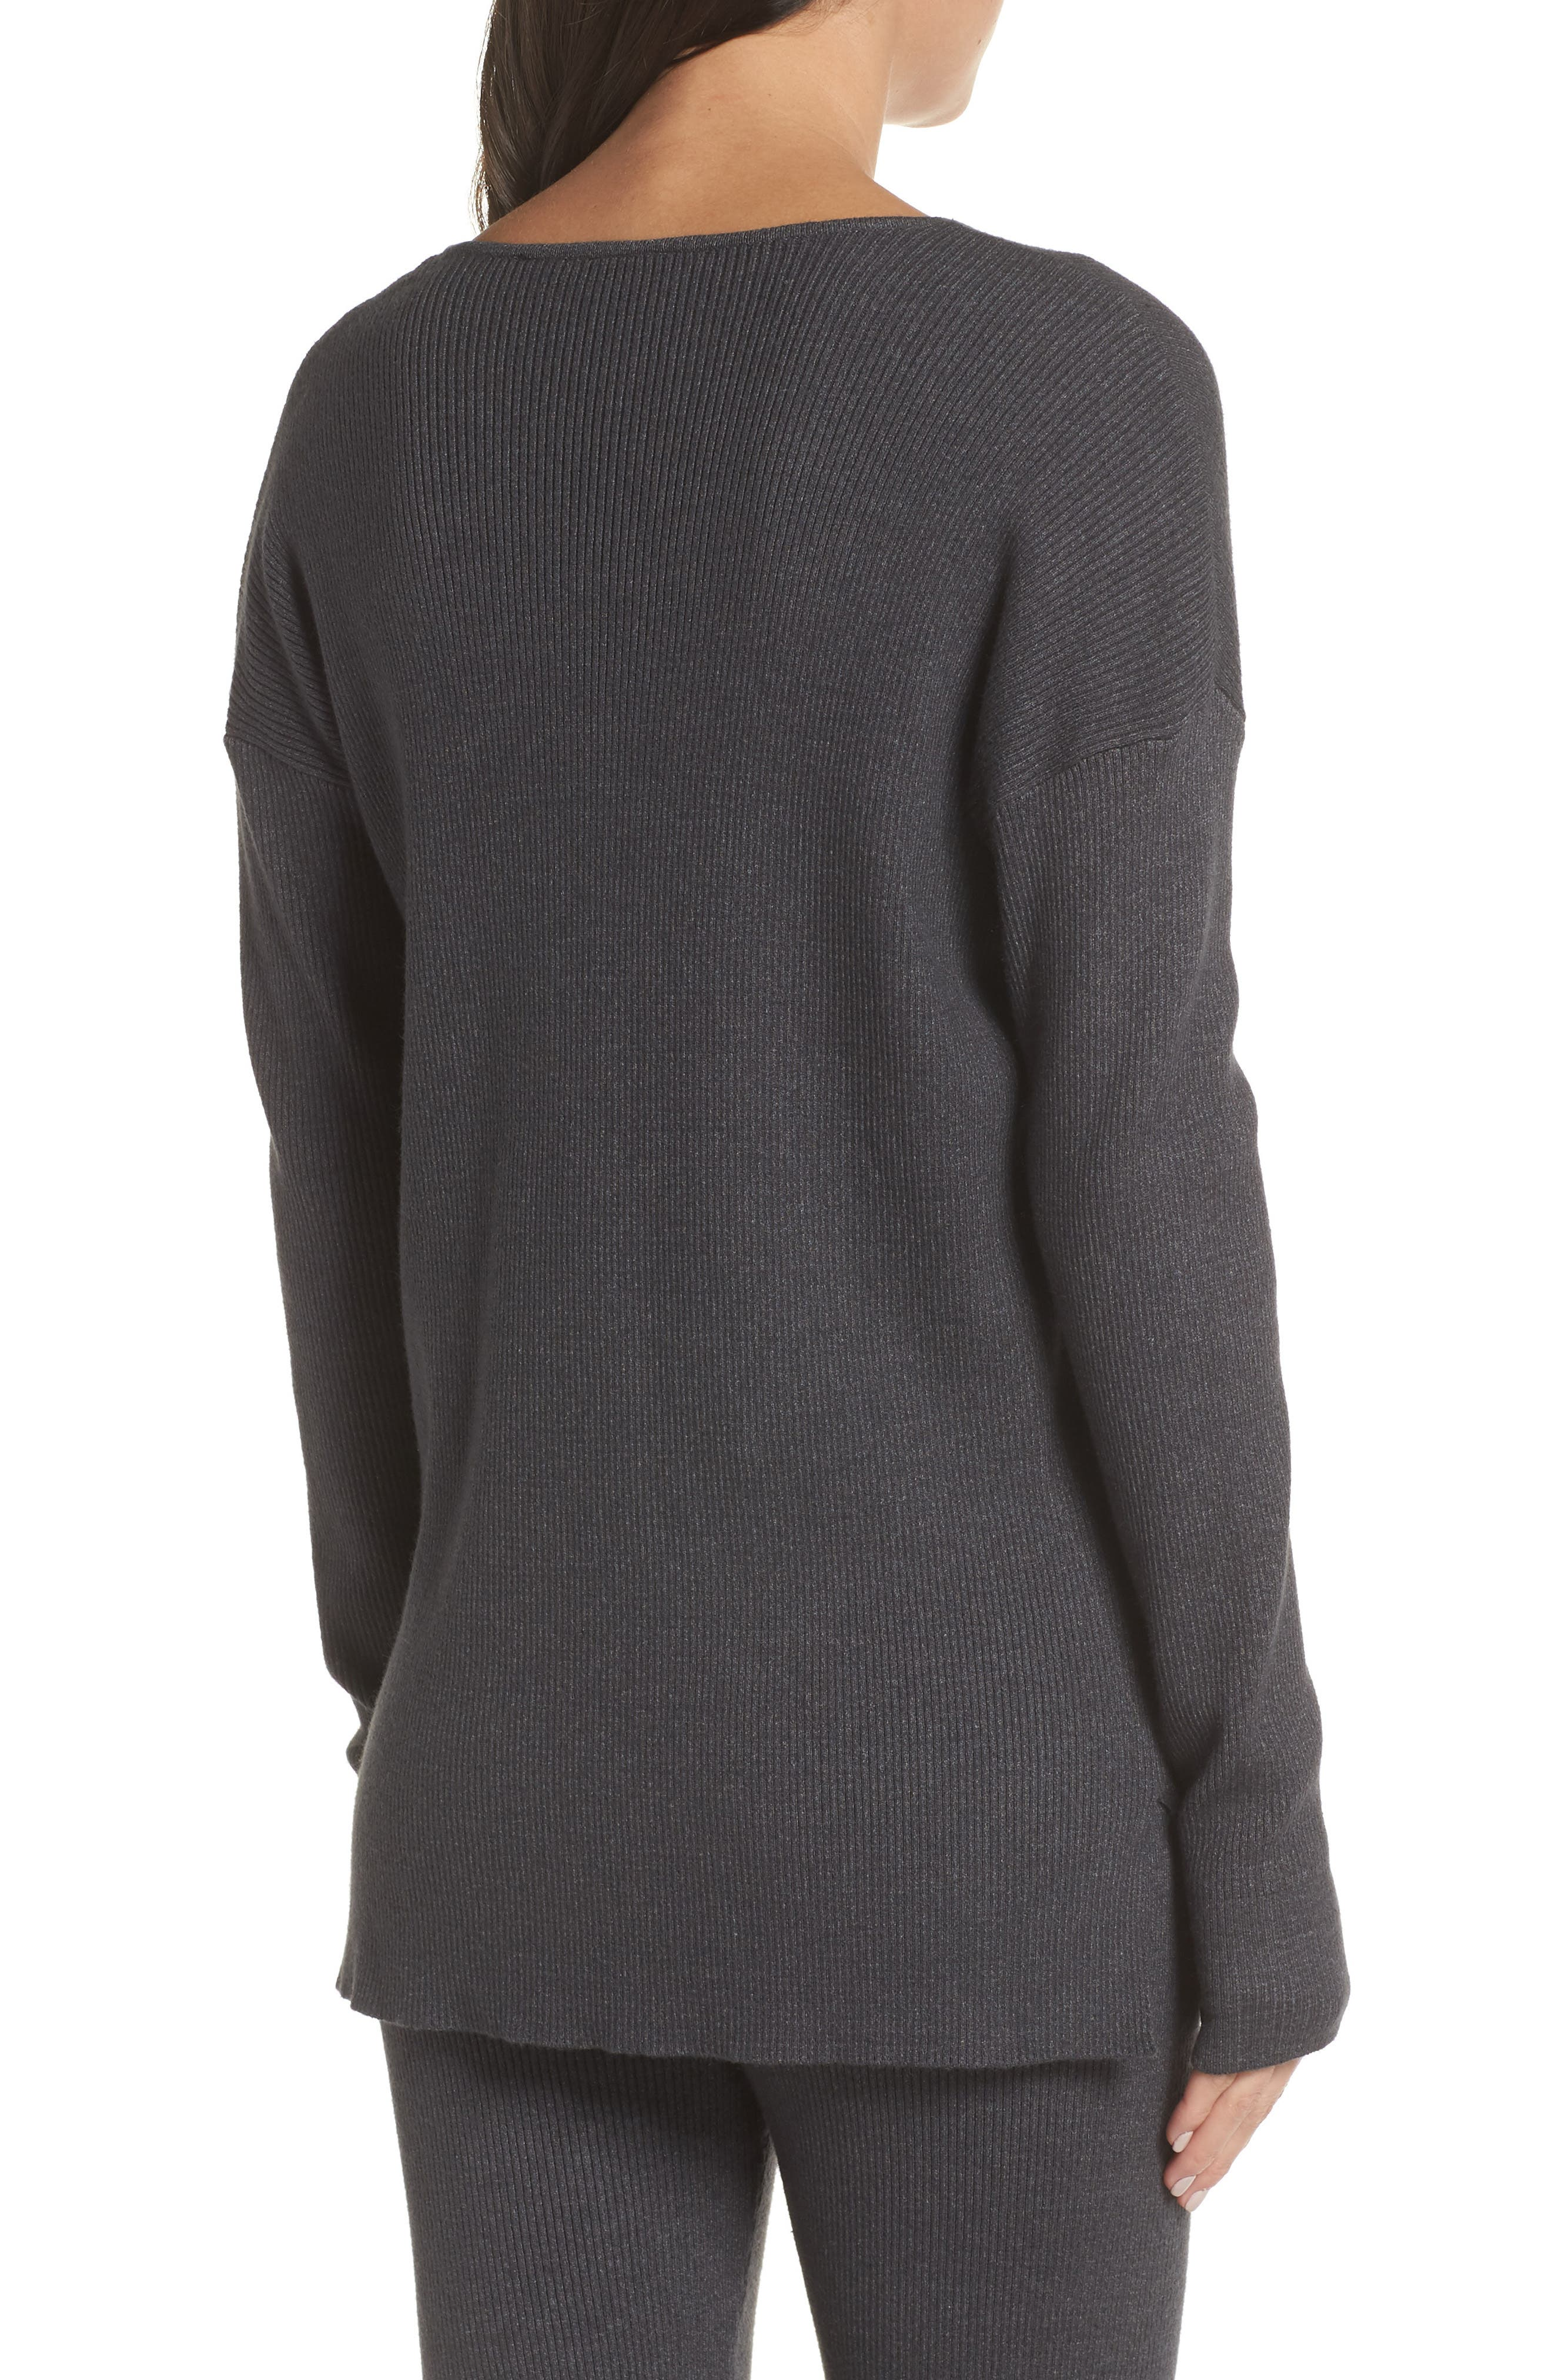 Rib Knit Pullover,                             Alternate thumbnail 2, color,                             GREY MED CHARCOAL HEATHER